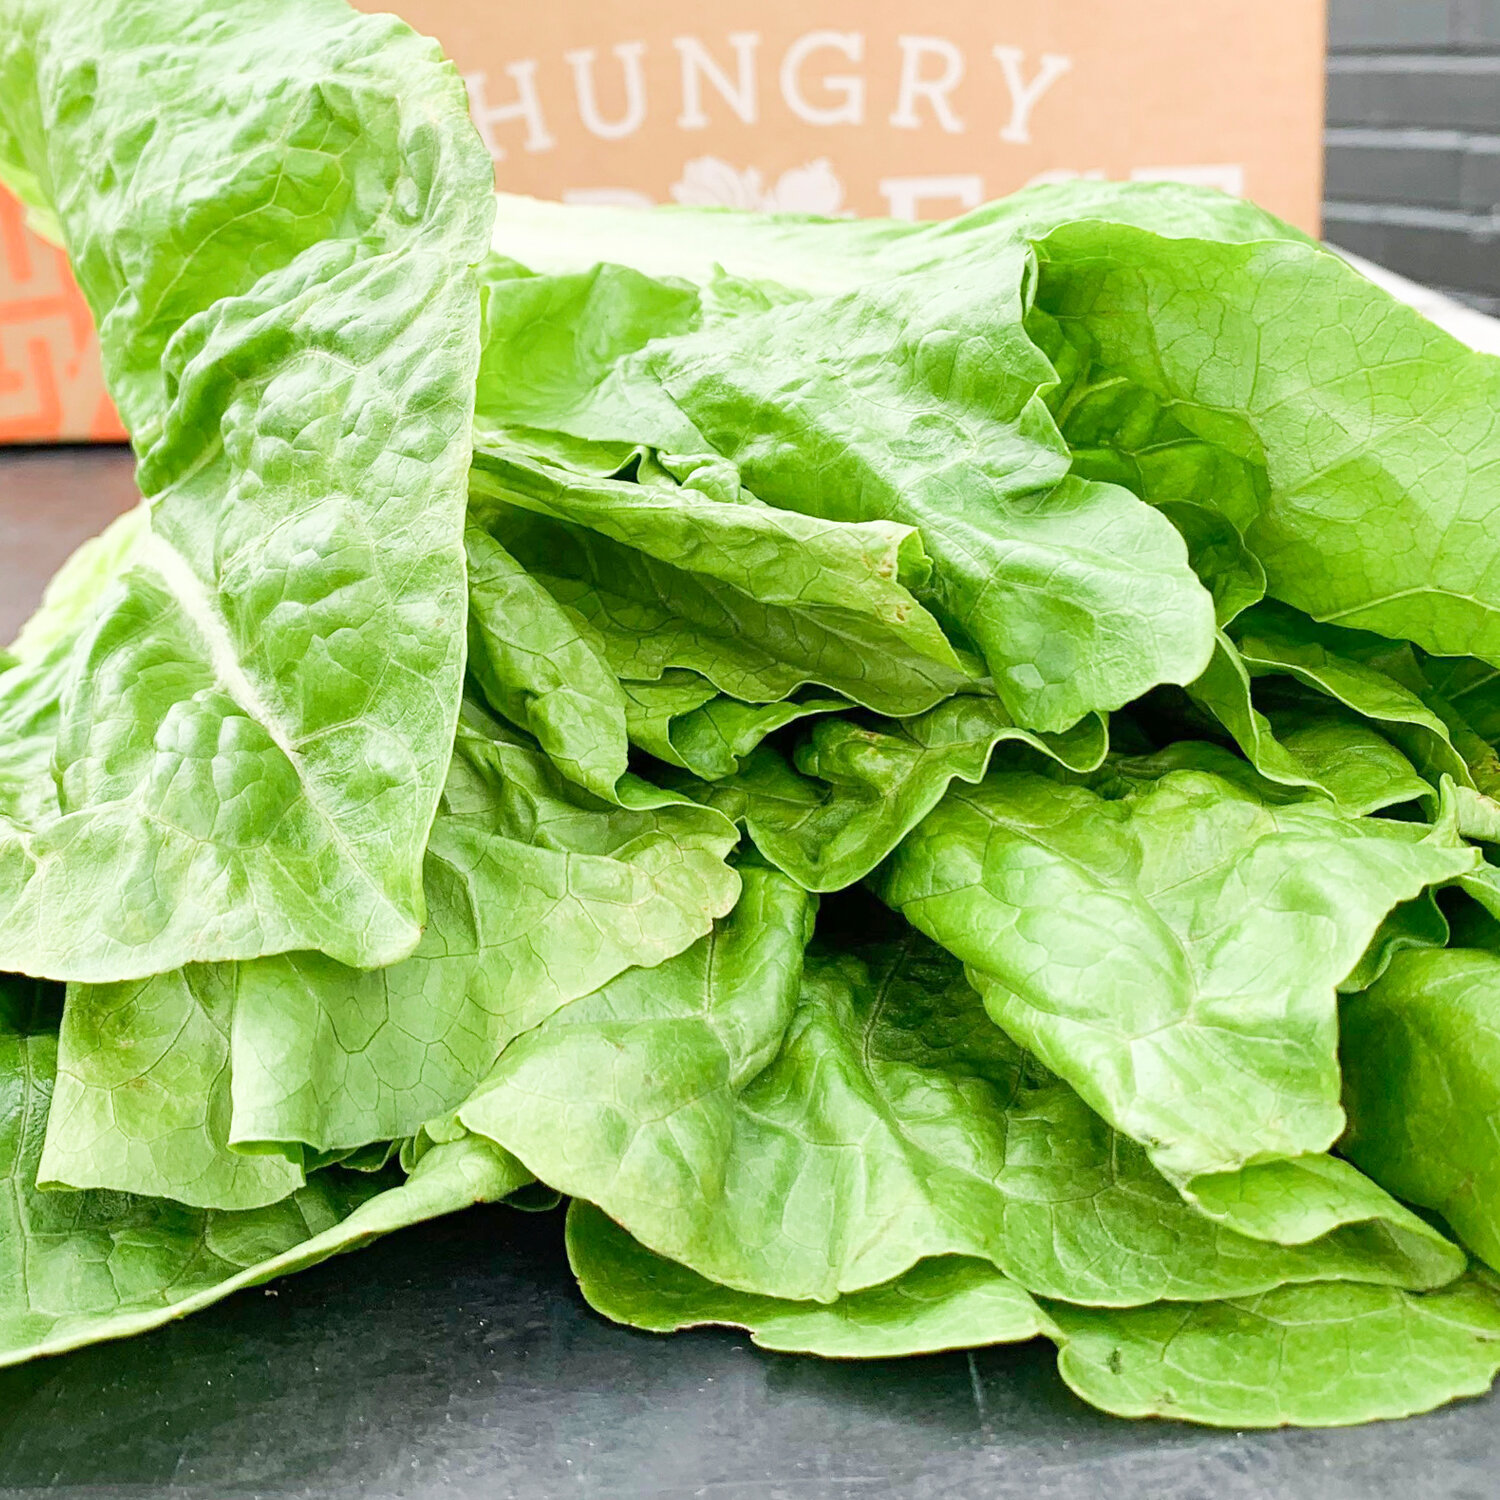 """Seared Romaine Lettuce Bottoms""""Scraps, Wilts & Weeds"""" authors came up with an amazing way to use every part of a head of Romaine in the most surprising and delicious of ways. - Find the recipe at: The Splendid Table"""